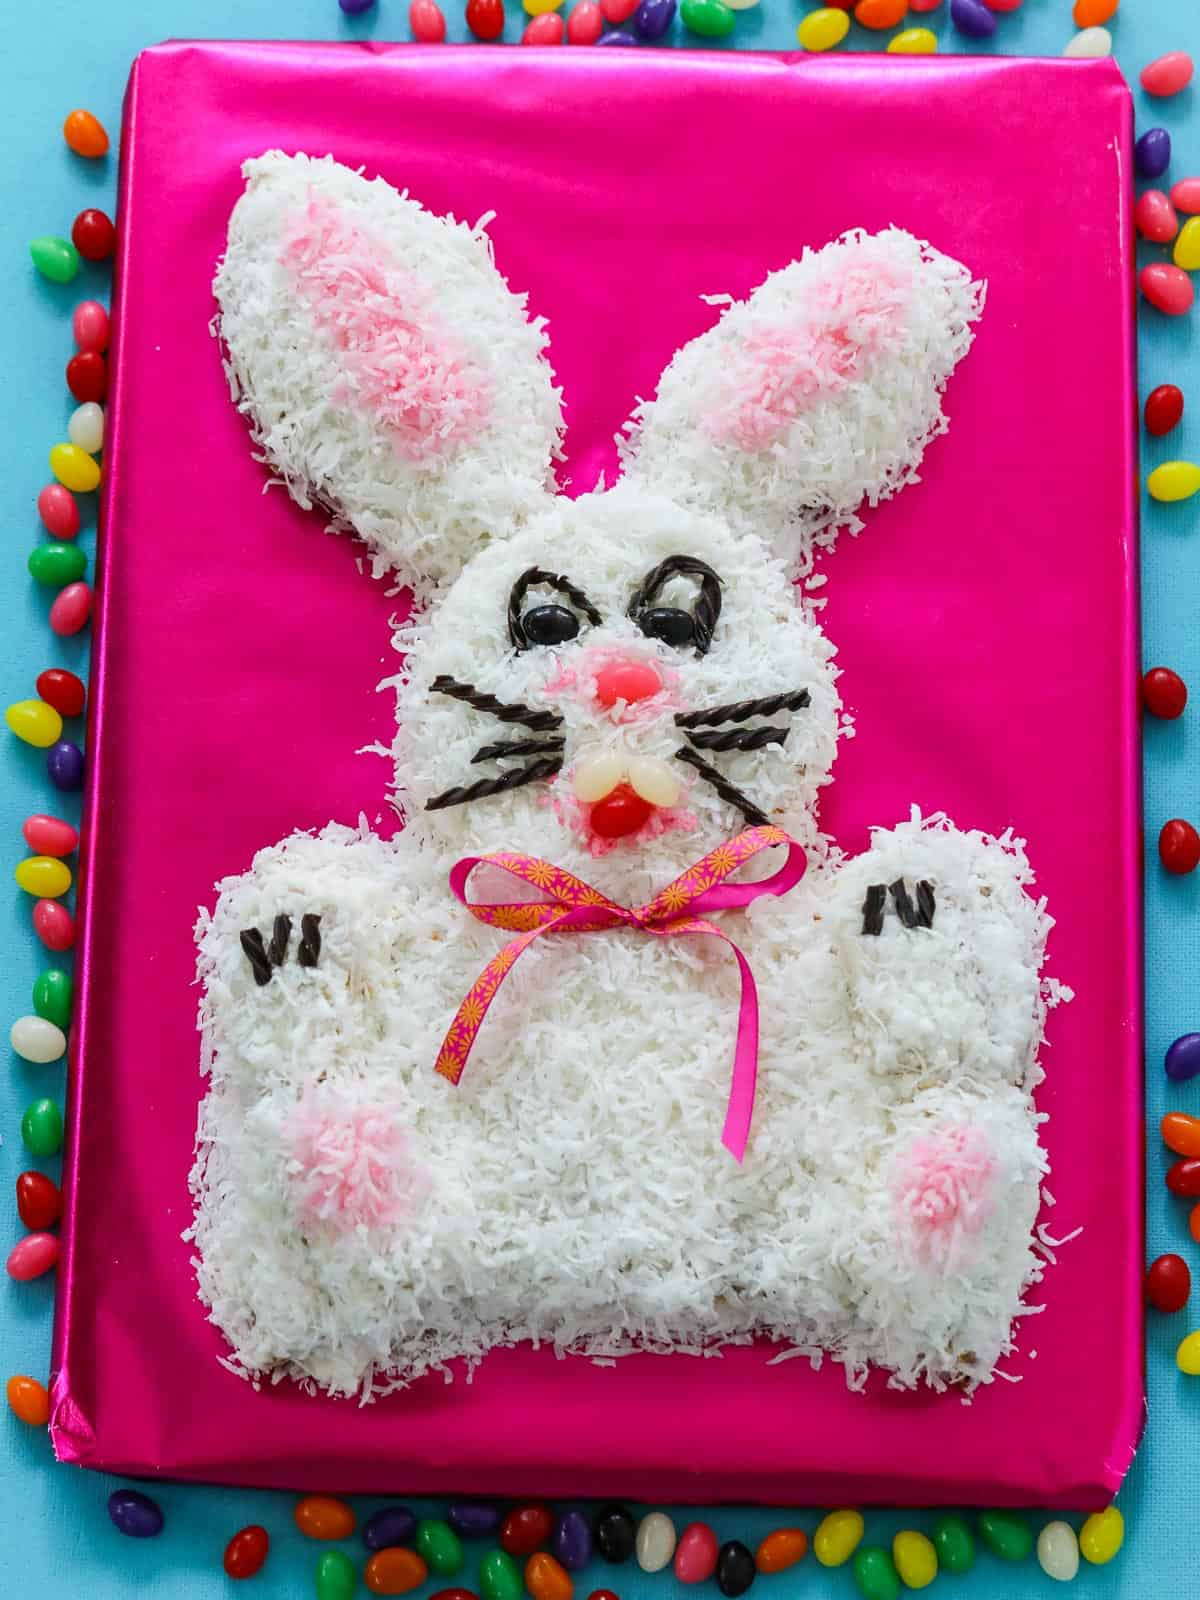 Overhead view of an adorable bunny cake on a hot pink background surrounded with jelly beans.